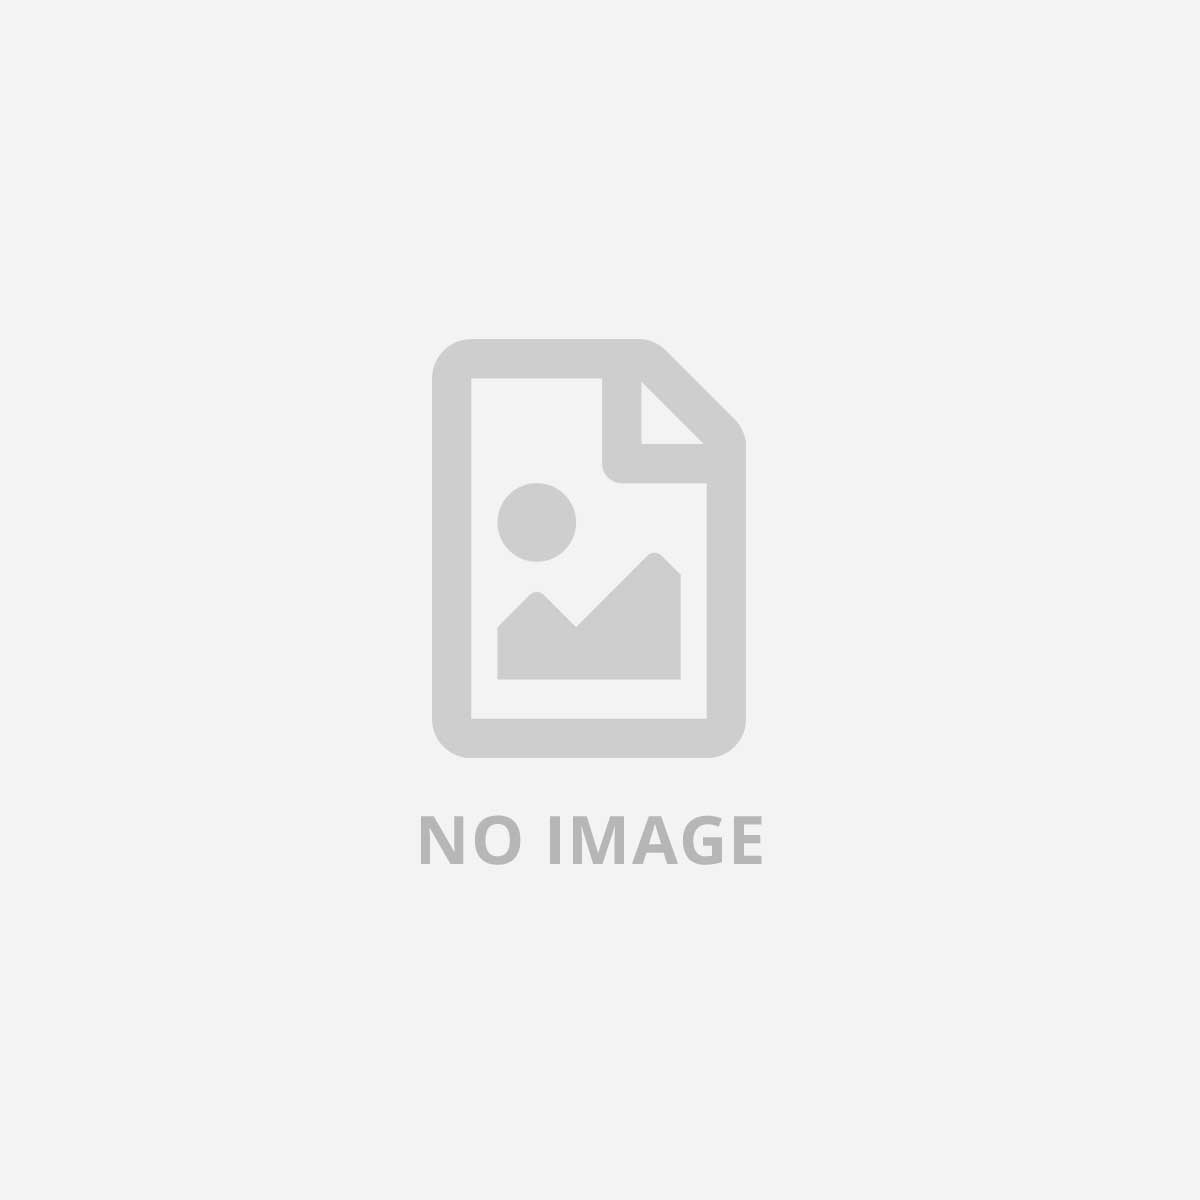 TOSHIBA VIDEO STREAMING HARD DRIVE 1TB